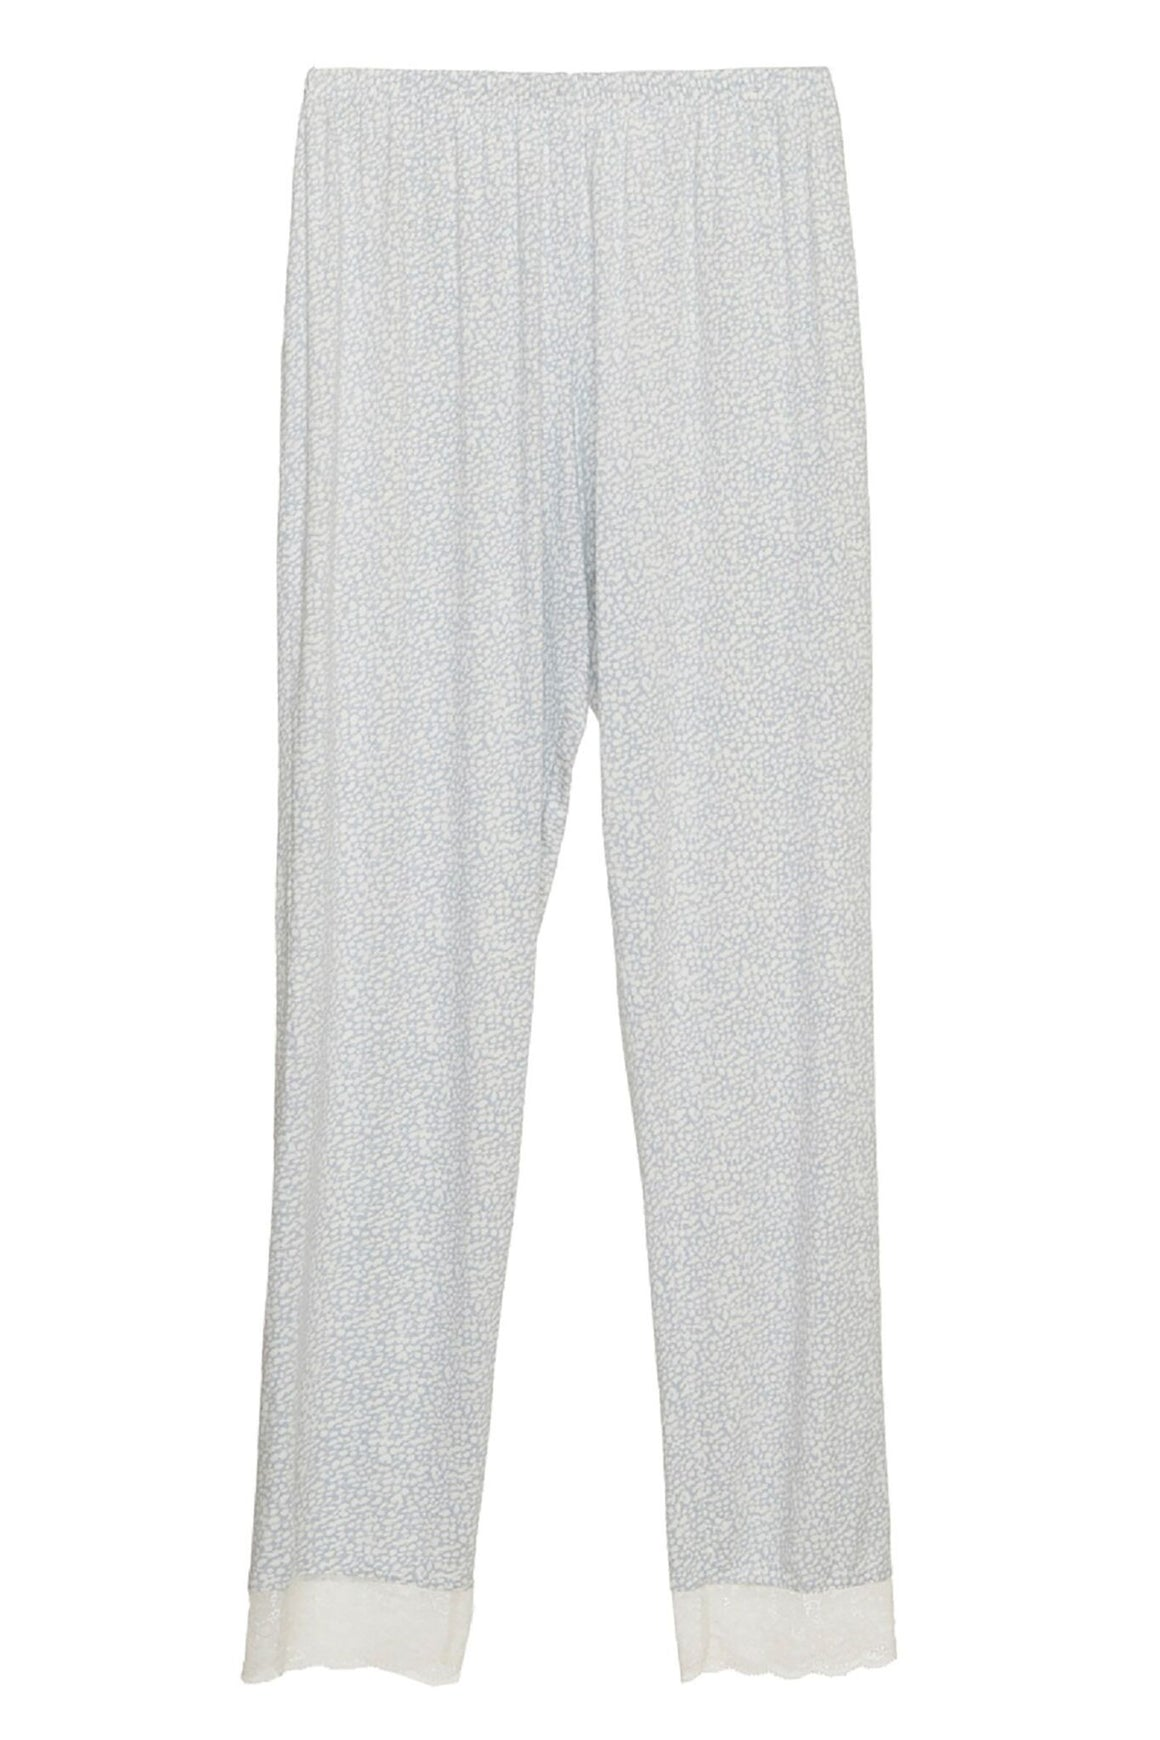 Eberjey Mink Puff Slim Pant - Lounge Beauties